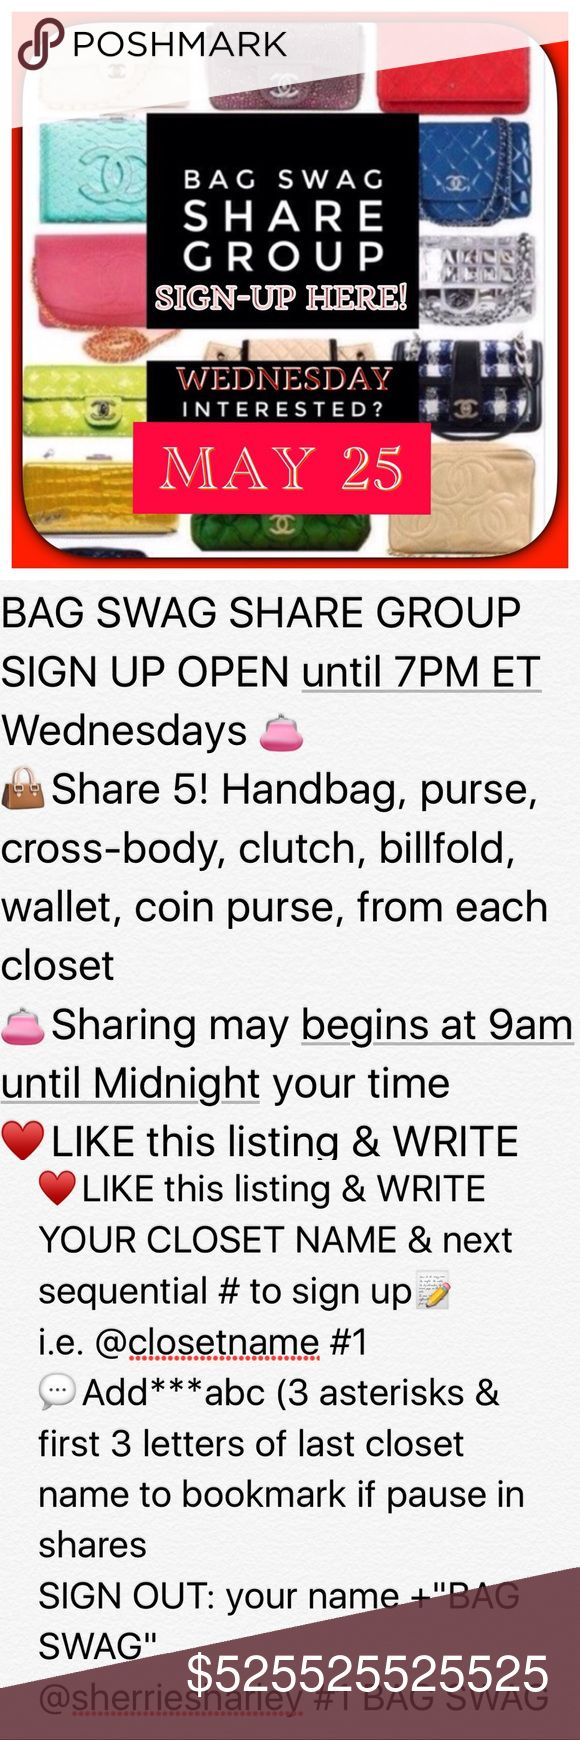 "5/25 Wednesday BAG SWAG Share Group Sign Up OPEN 5/25 Wednesday BAG SWAG SHARE GROUP SIGN UP OPEN until 7PM ET Wednesdays 👛 👜Share 5! Handbag, purse, cross-body, clutch, billfold, wallet, coin purse, from each closet 👛Sharing may begins at 9am until Midnight your time ♥️LIKE this listing & WRITE YOUR CLOSET NAME & next sequential # to sign up📝  i.e. @closetname #1 💬Add***abc (3 asterisks & first 3 letters of last closet name to bookmark if pause in shares SIGN OUT: your name +""BAG SWAG""…"